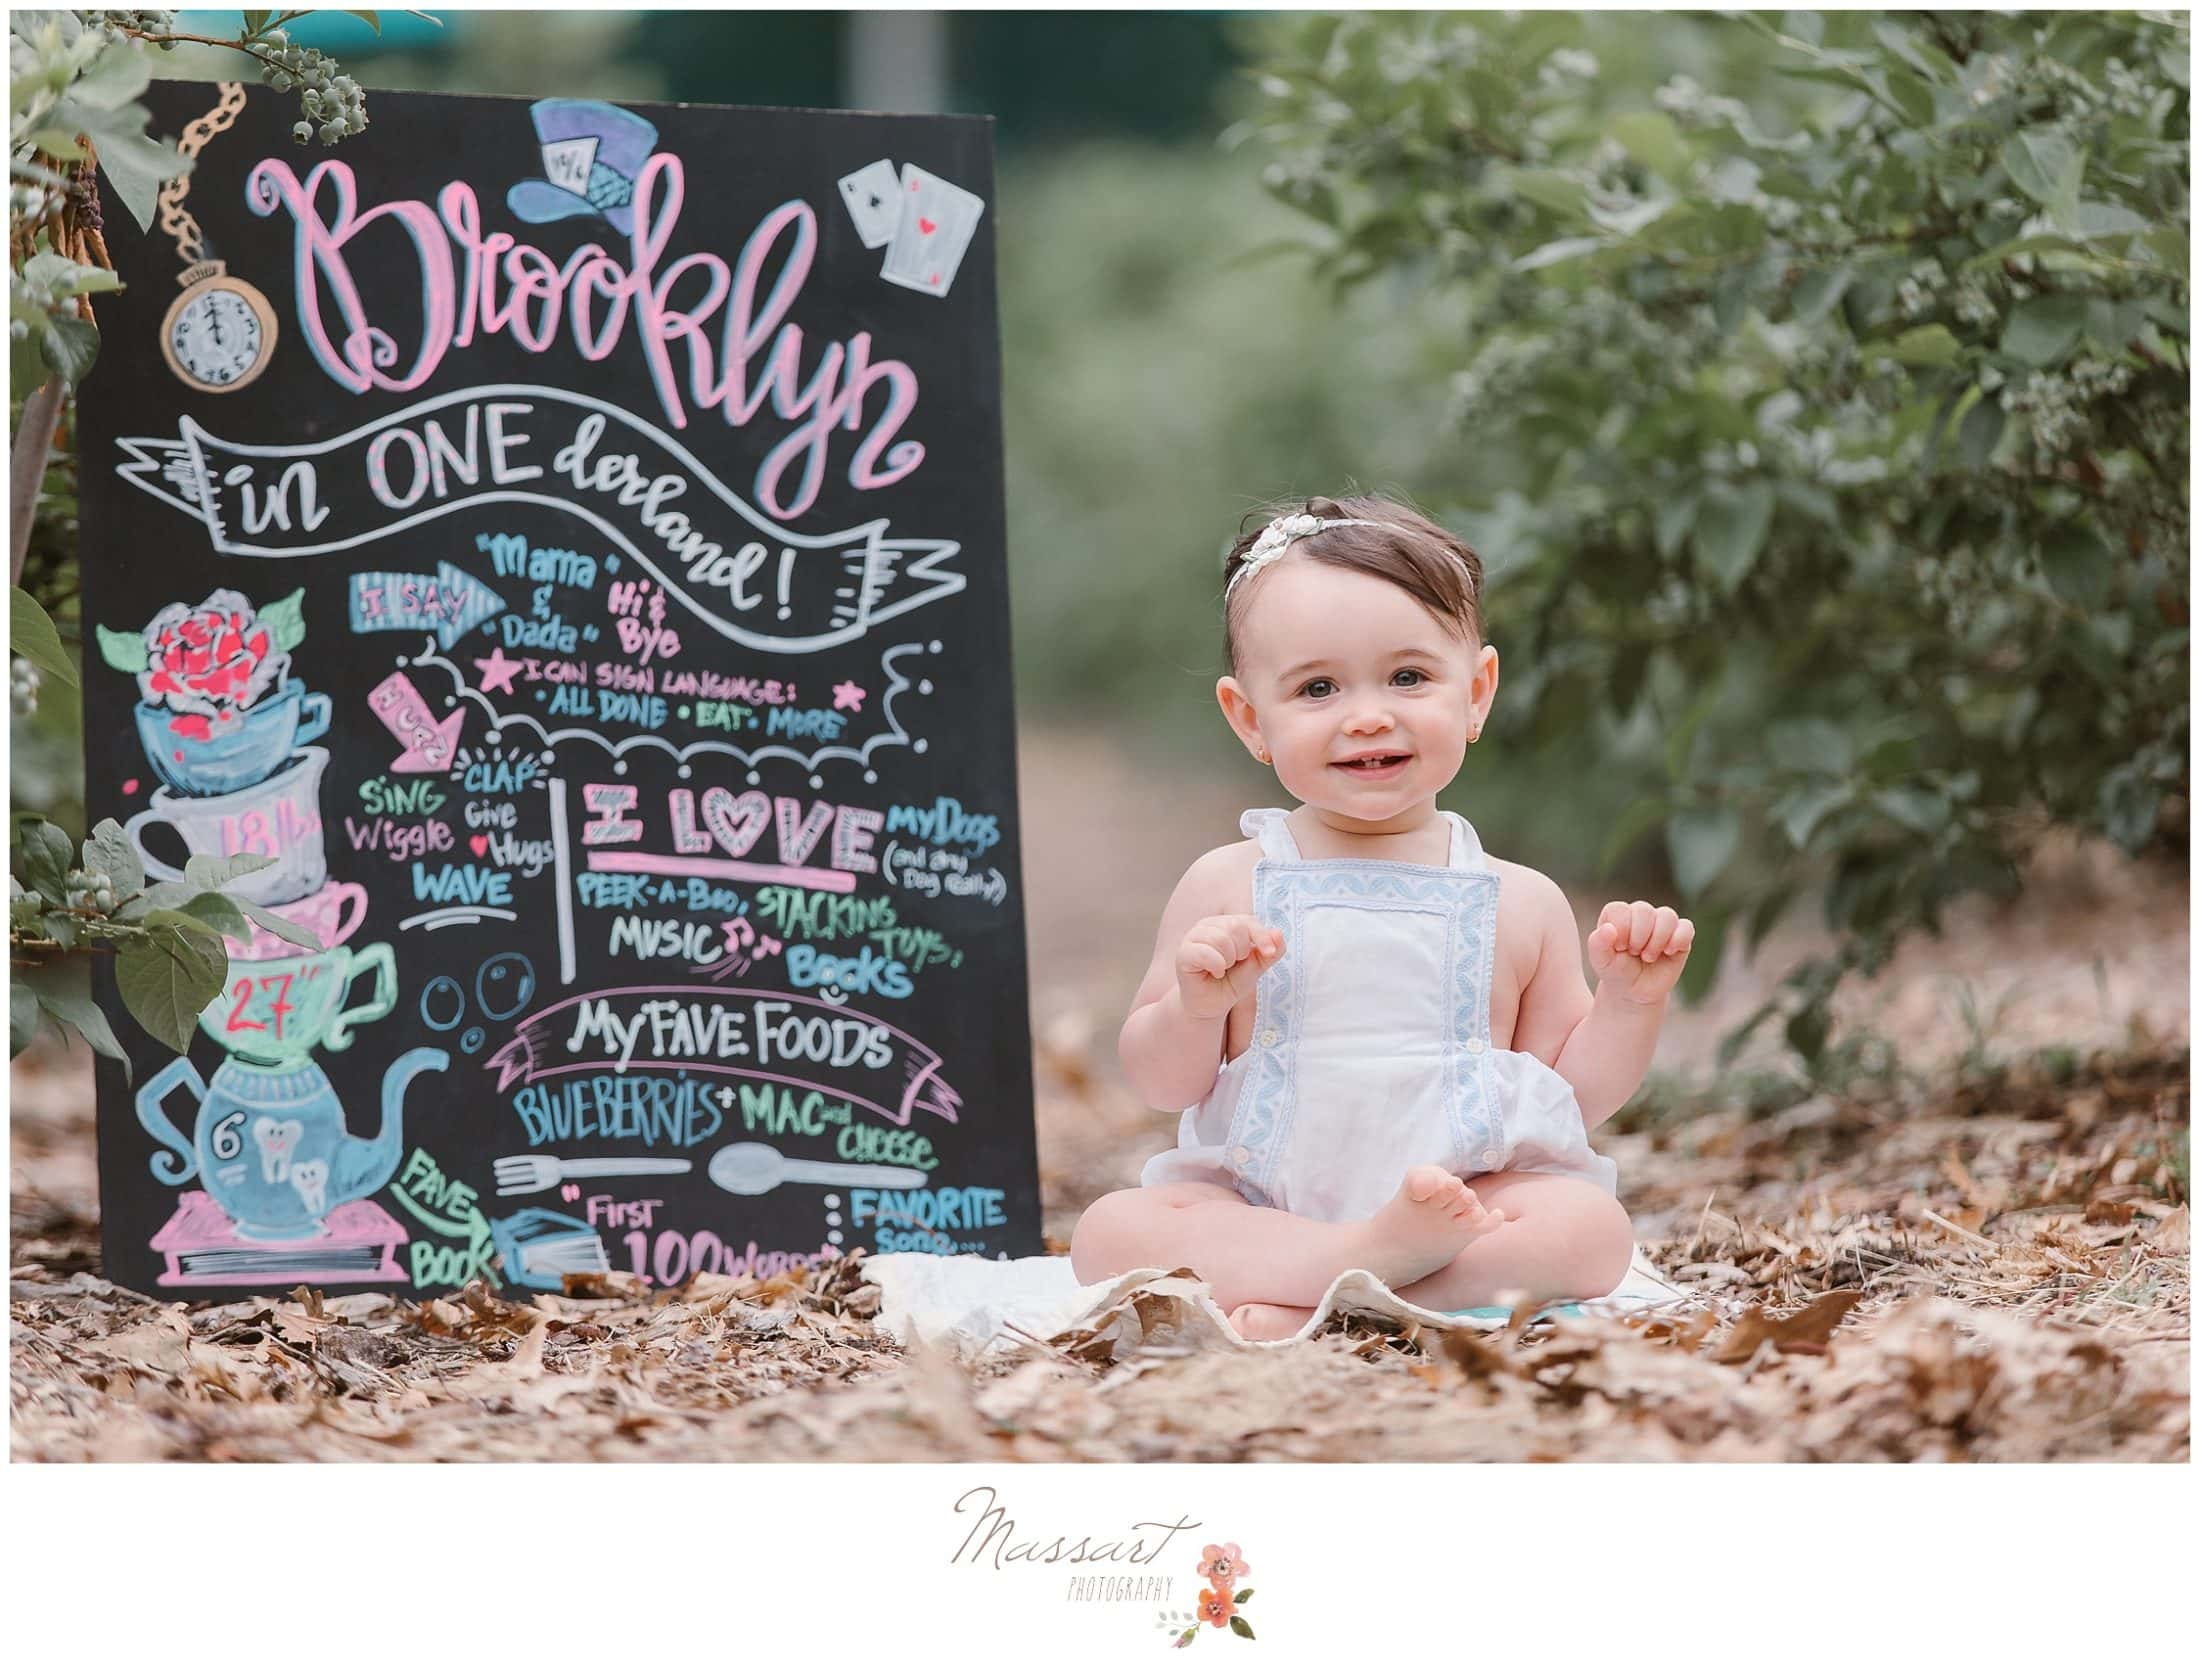 Baby girl with her one year old update sign in the blueberry farm during her cake smash session photographed by Massart Photography Rhode Island